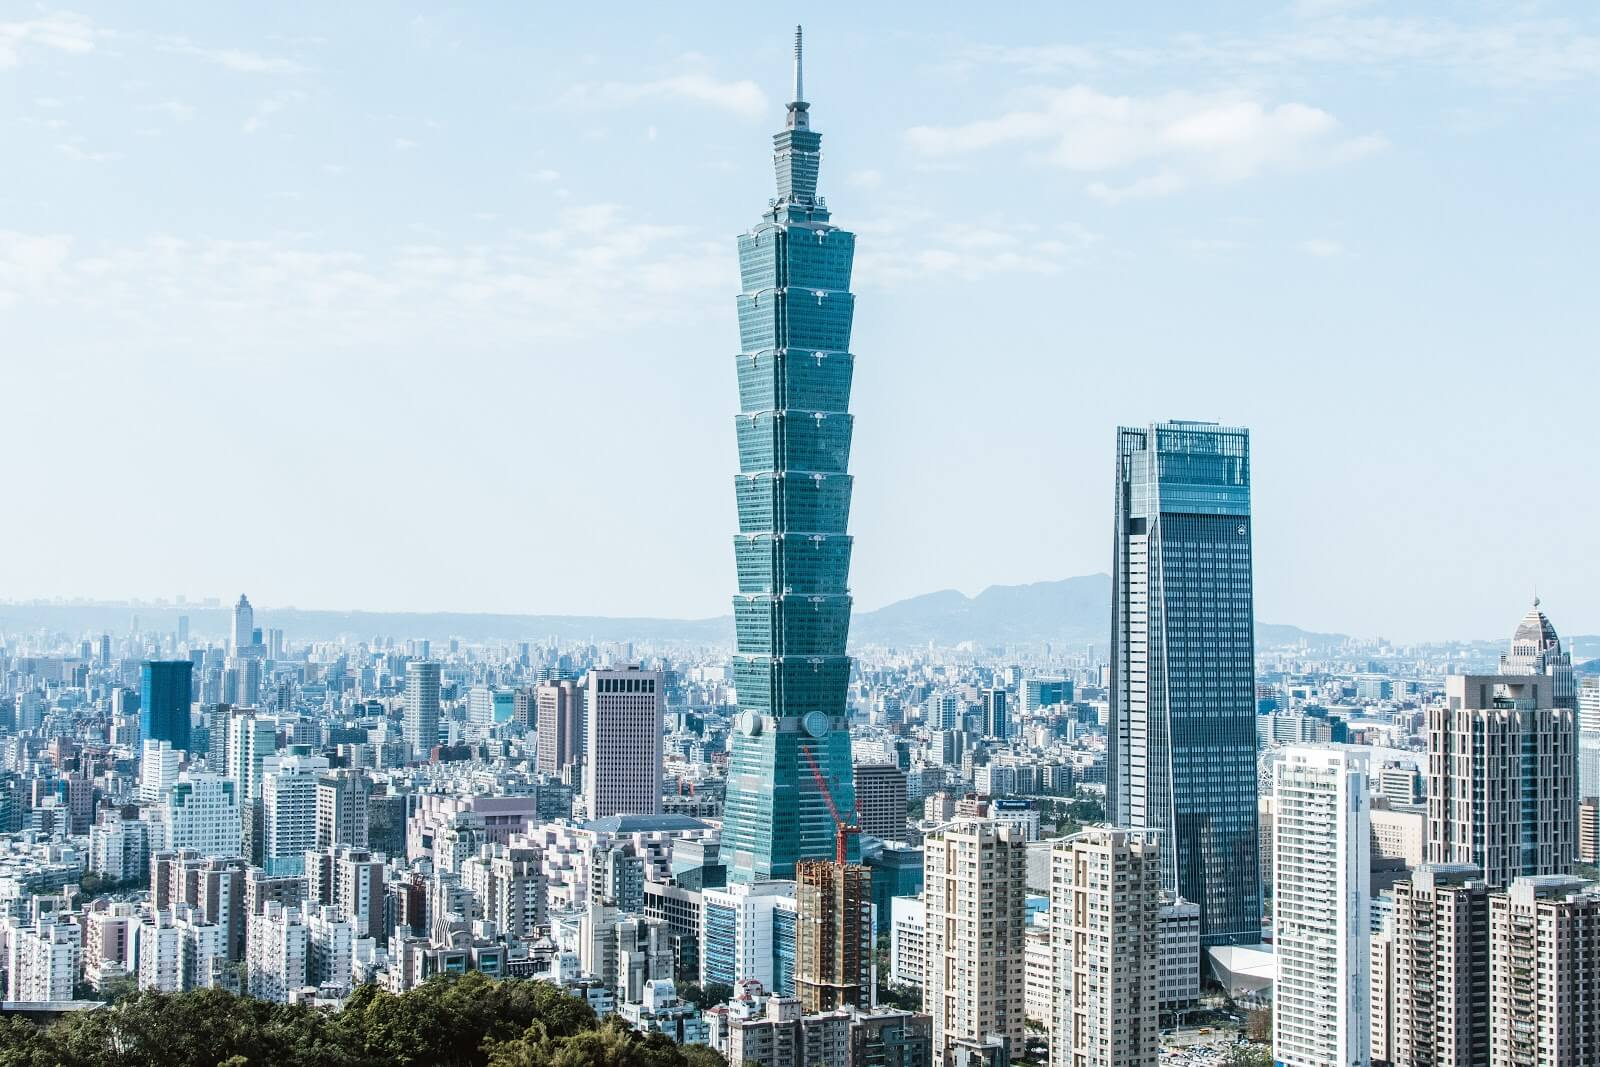 Taiwan - Top 10 countries to outsource software and web development 2020